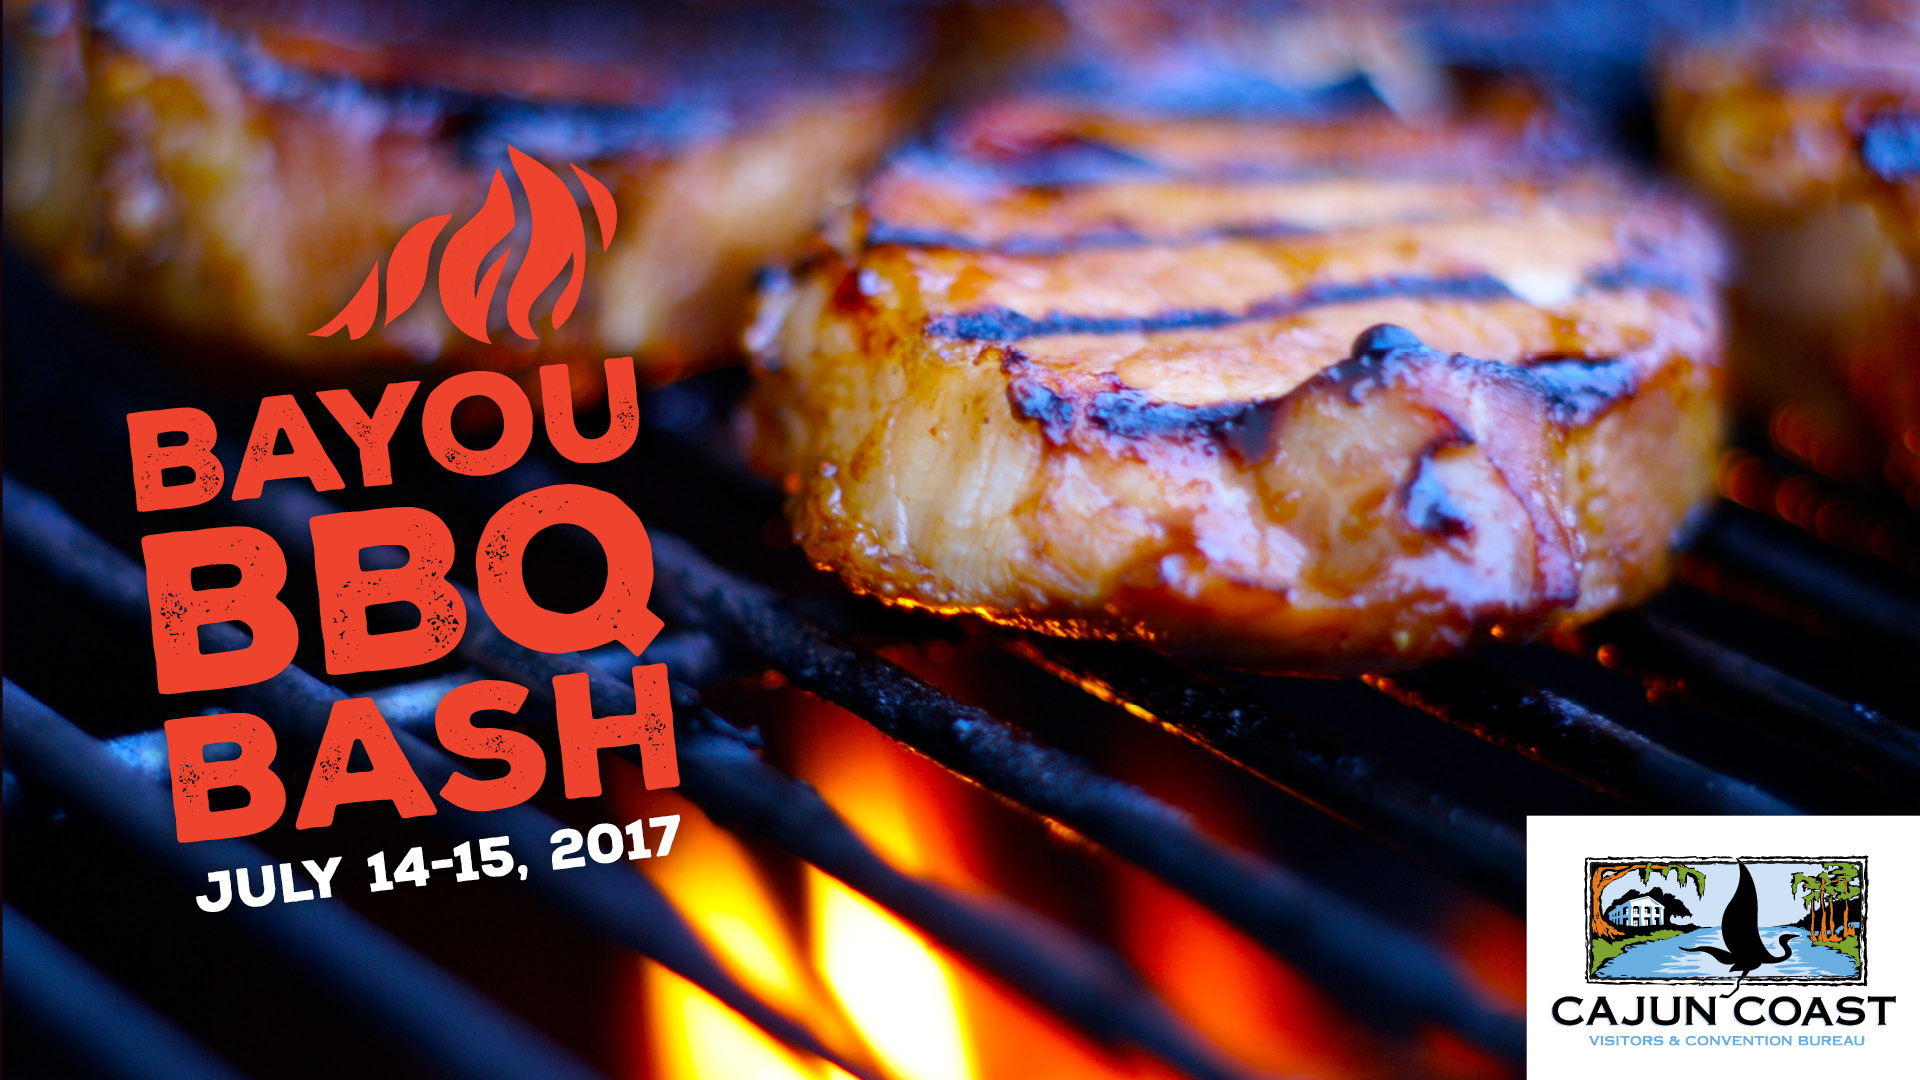 Annual Bayou BBQ Bash, Cajun Coast